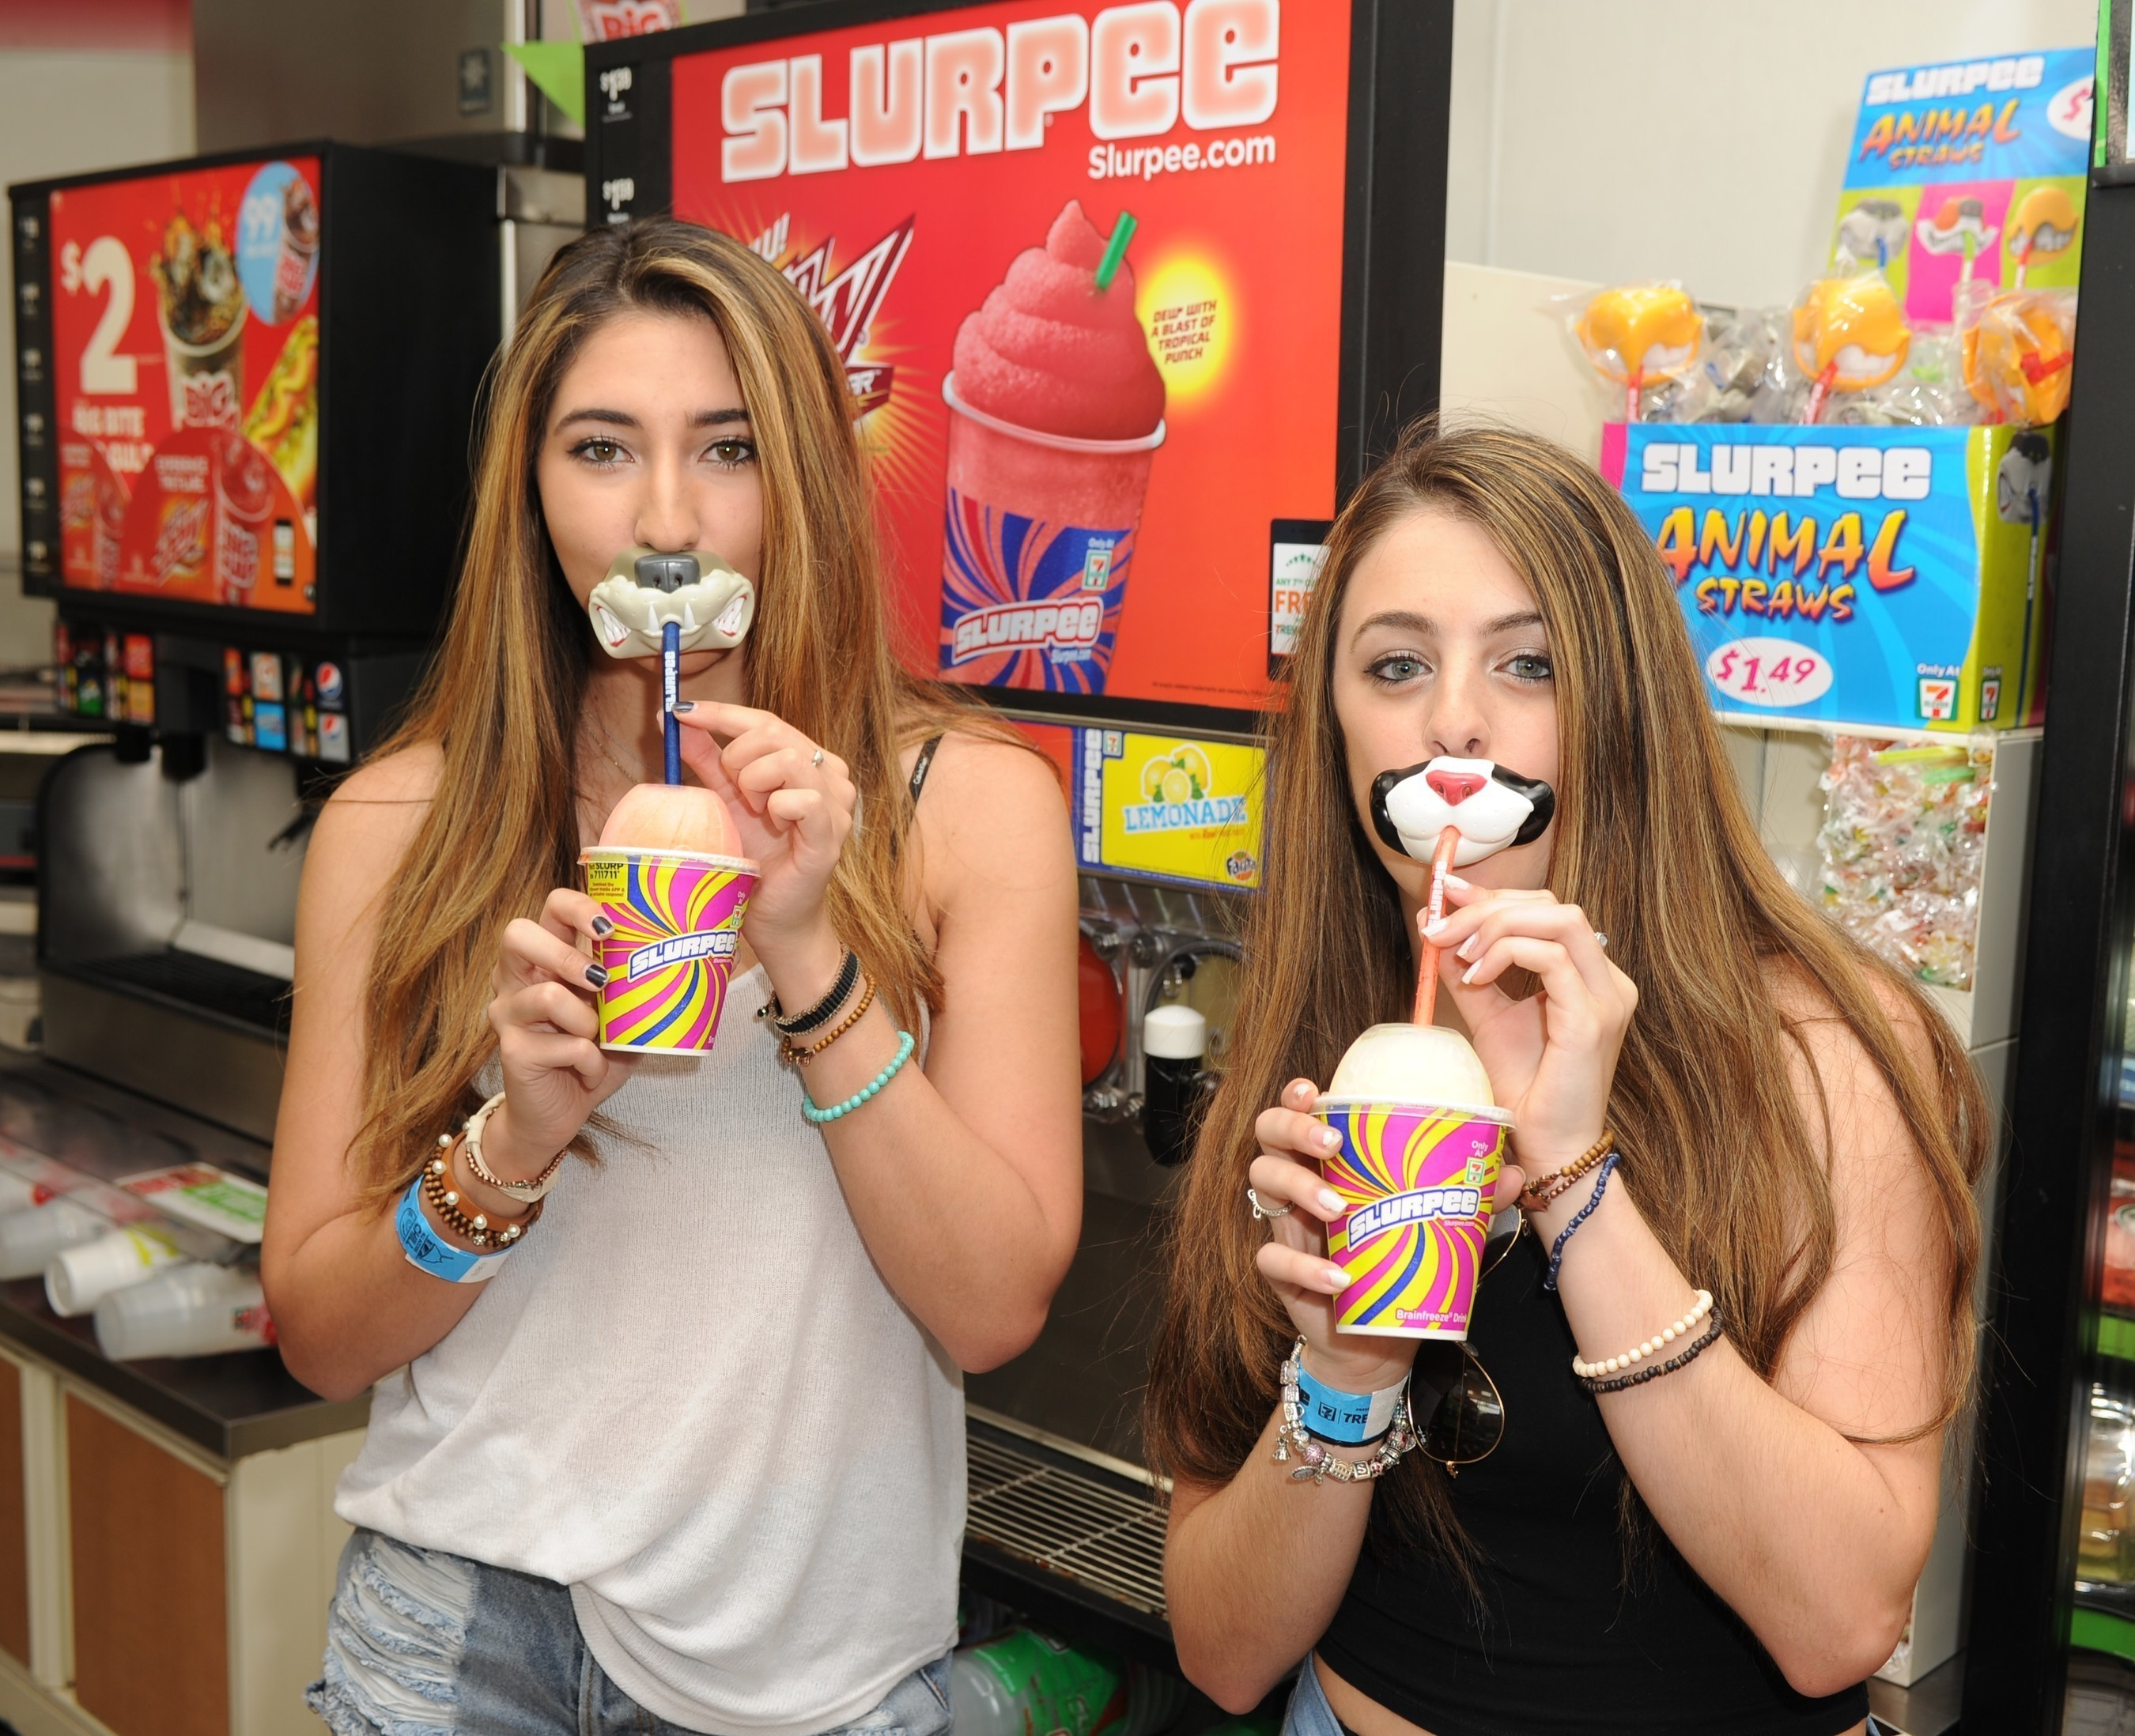 7-Eleven kicks off summer with new Slurpee Spirit Animal Straws and Slurpee bottles. The newest Slurpee accessories are sold separately at participating stores in four novelty straw varieties at $1.49 each and four colorful bottles each at $2.99.